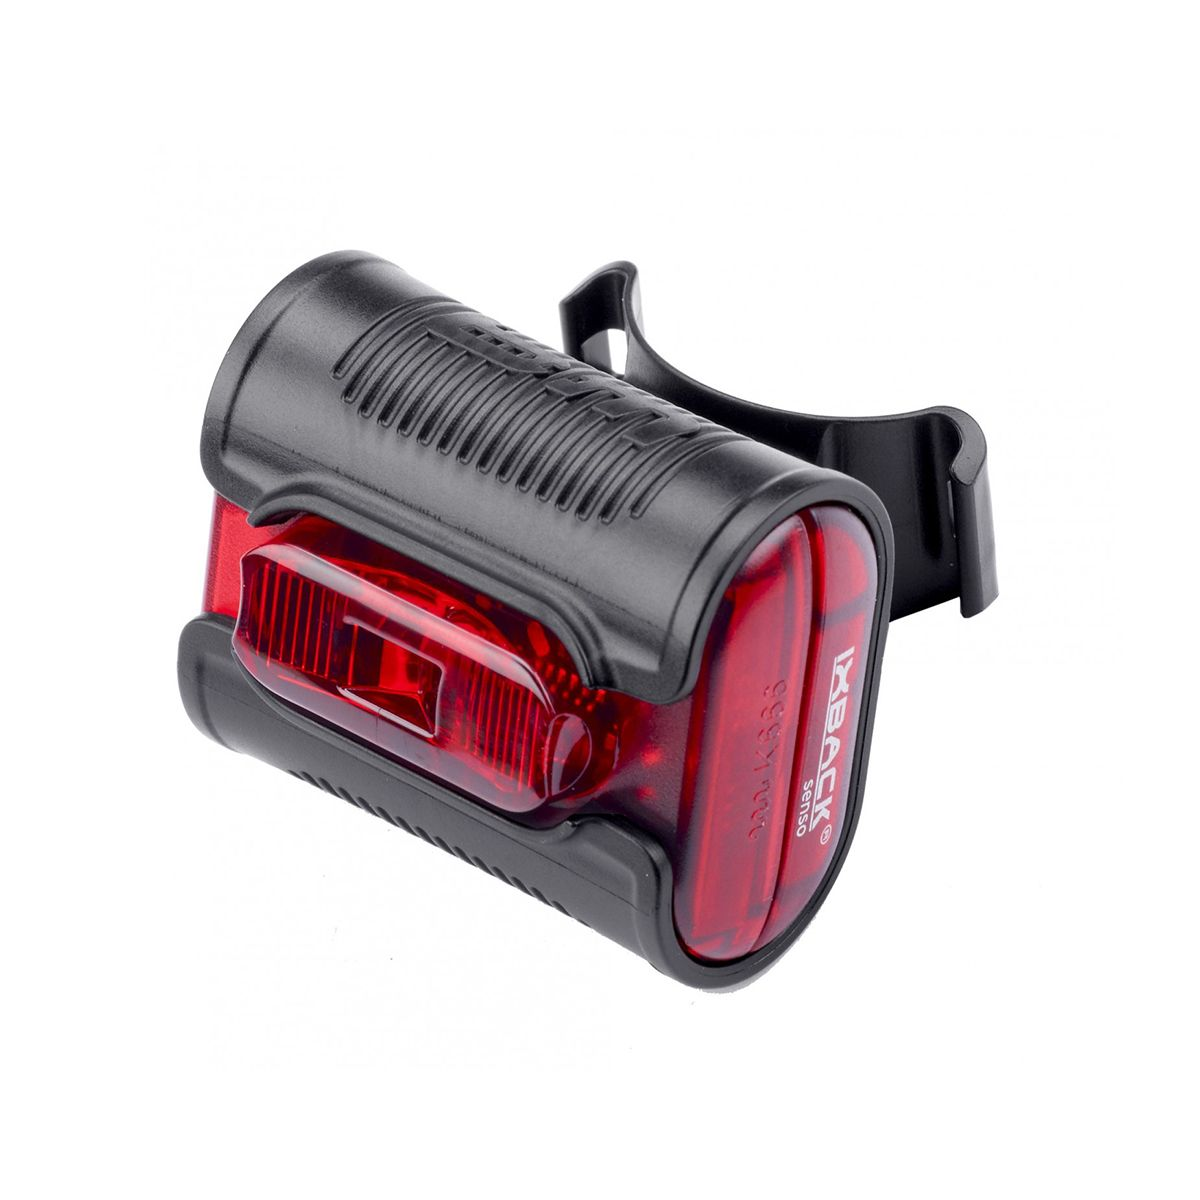 IXBACK Senso USB tail light